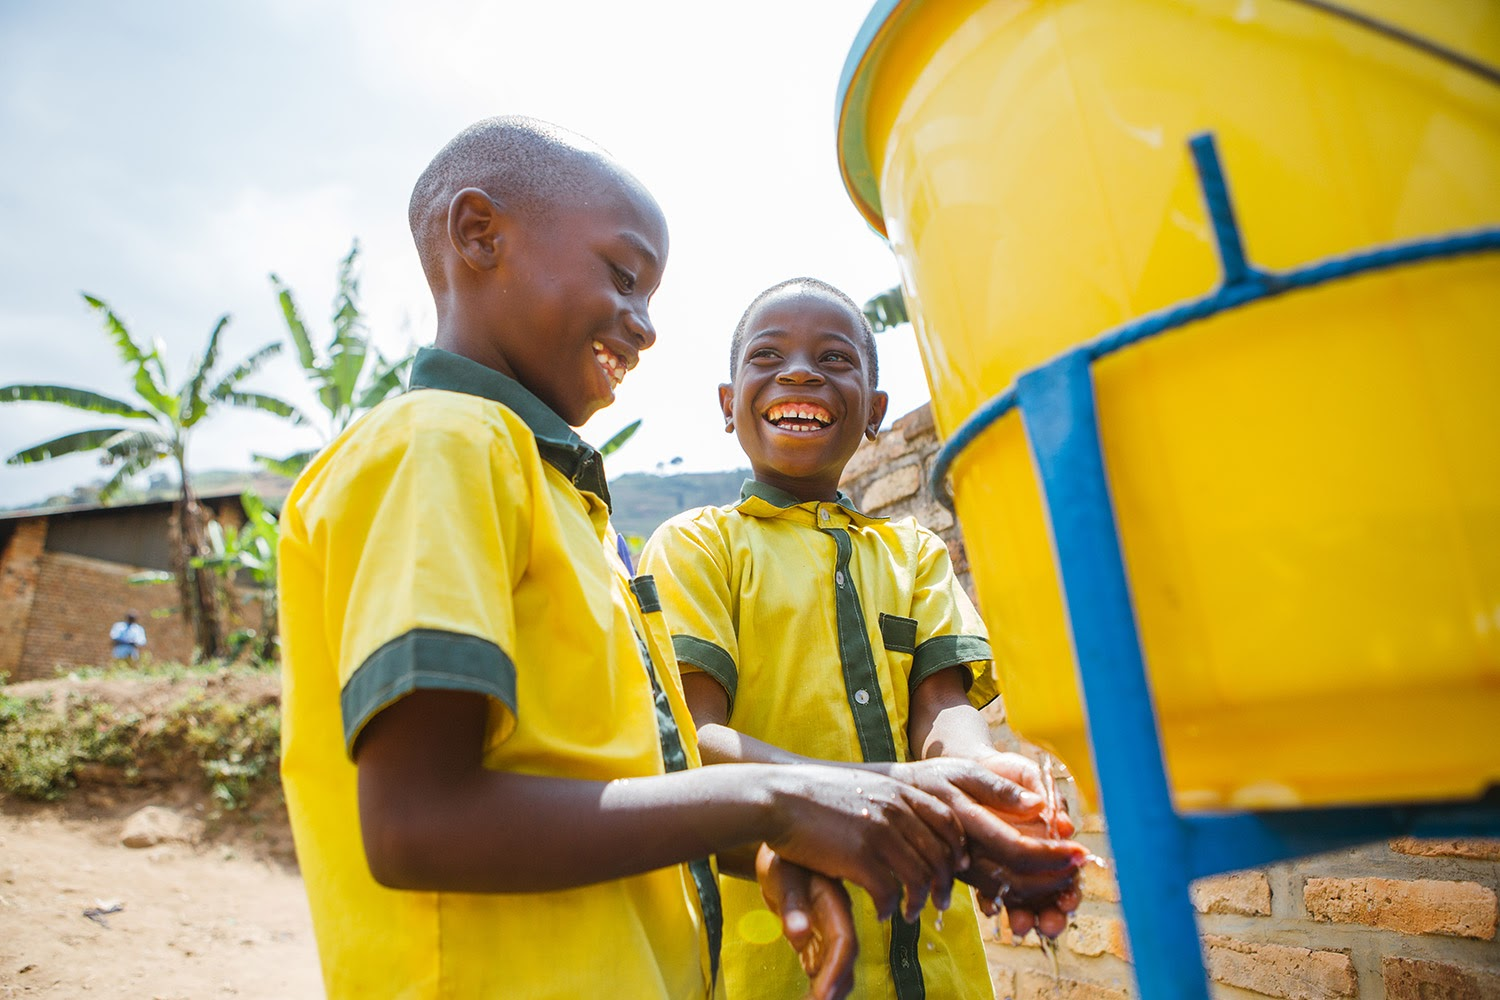 Water access a top priority for Rwandan schools as they reopen